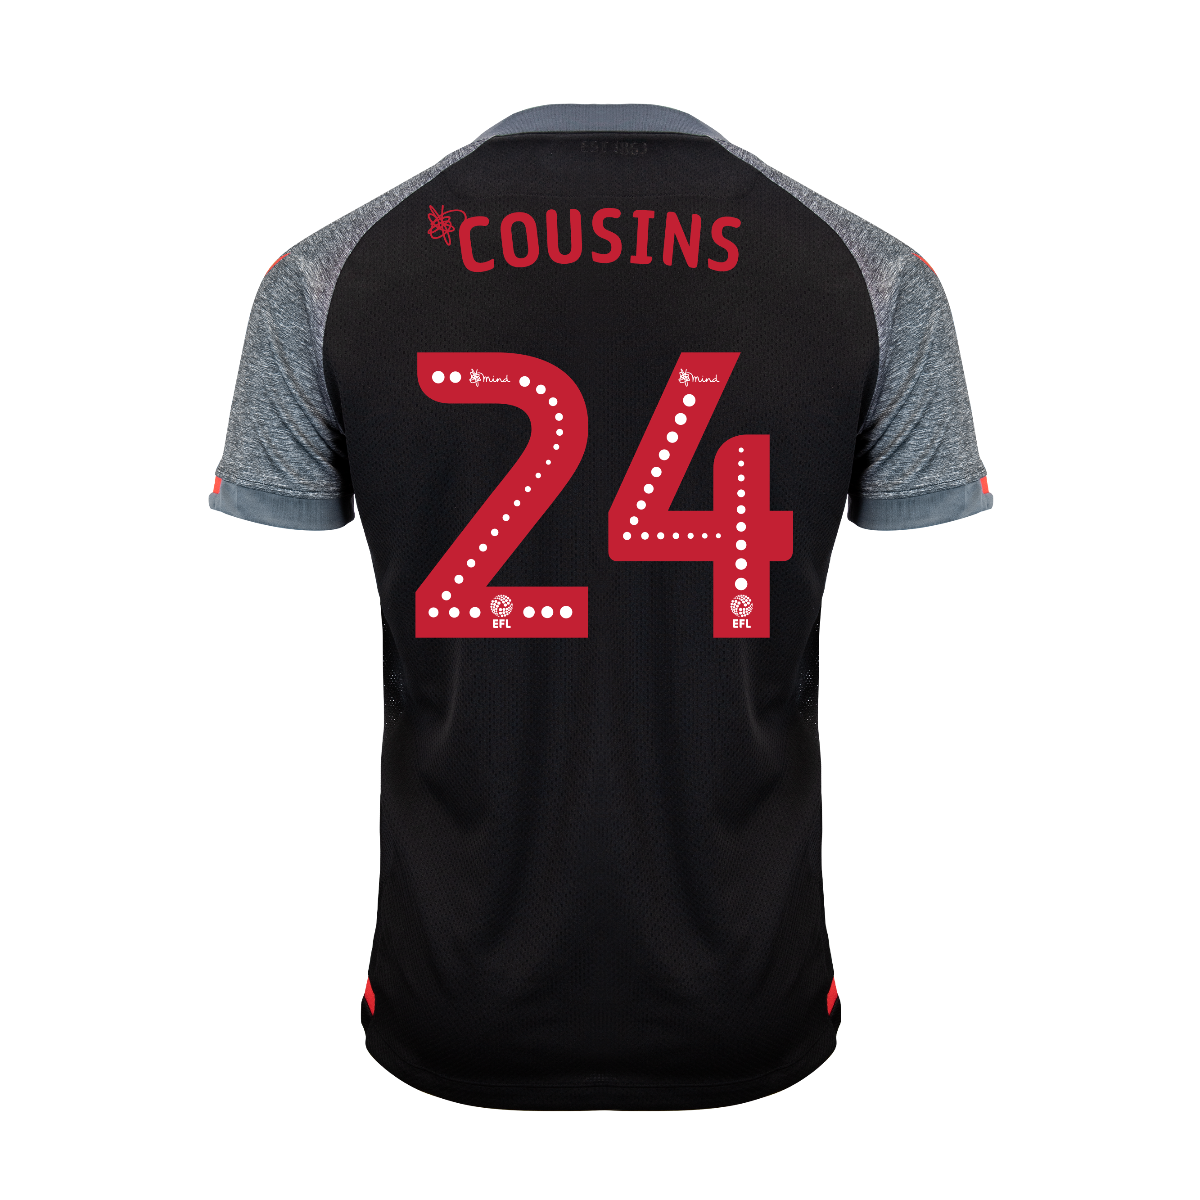 2019/20 Adult Away SS Shirt - Cousins